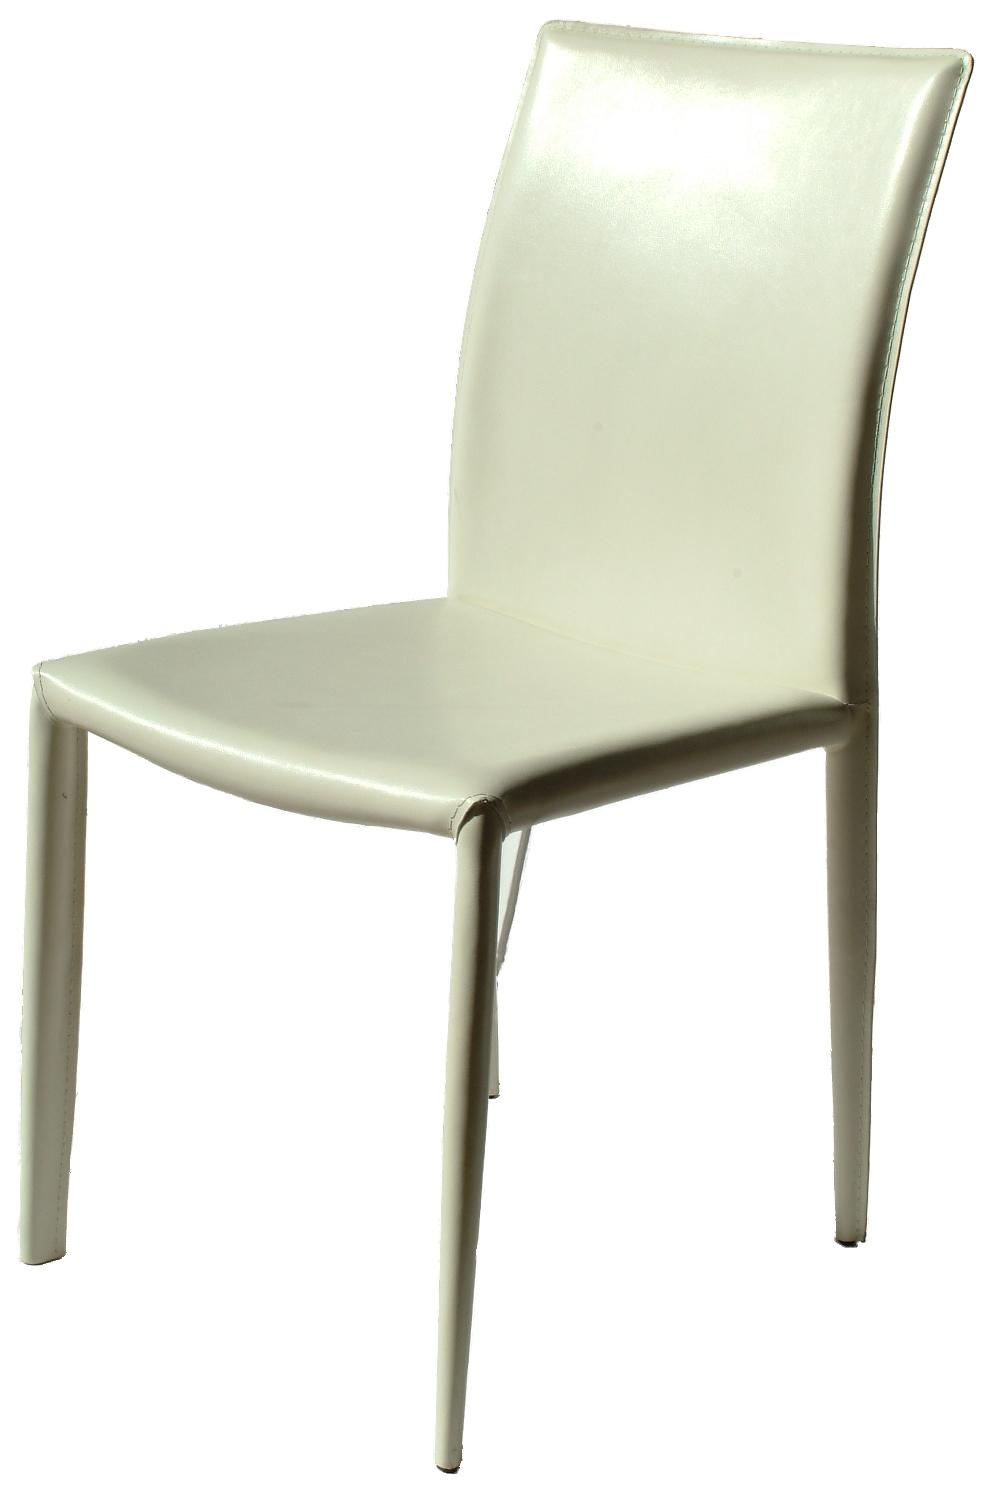 Venice white leather dining chair chairs home furniture for White leather dining chairs